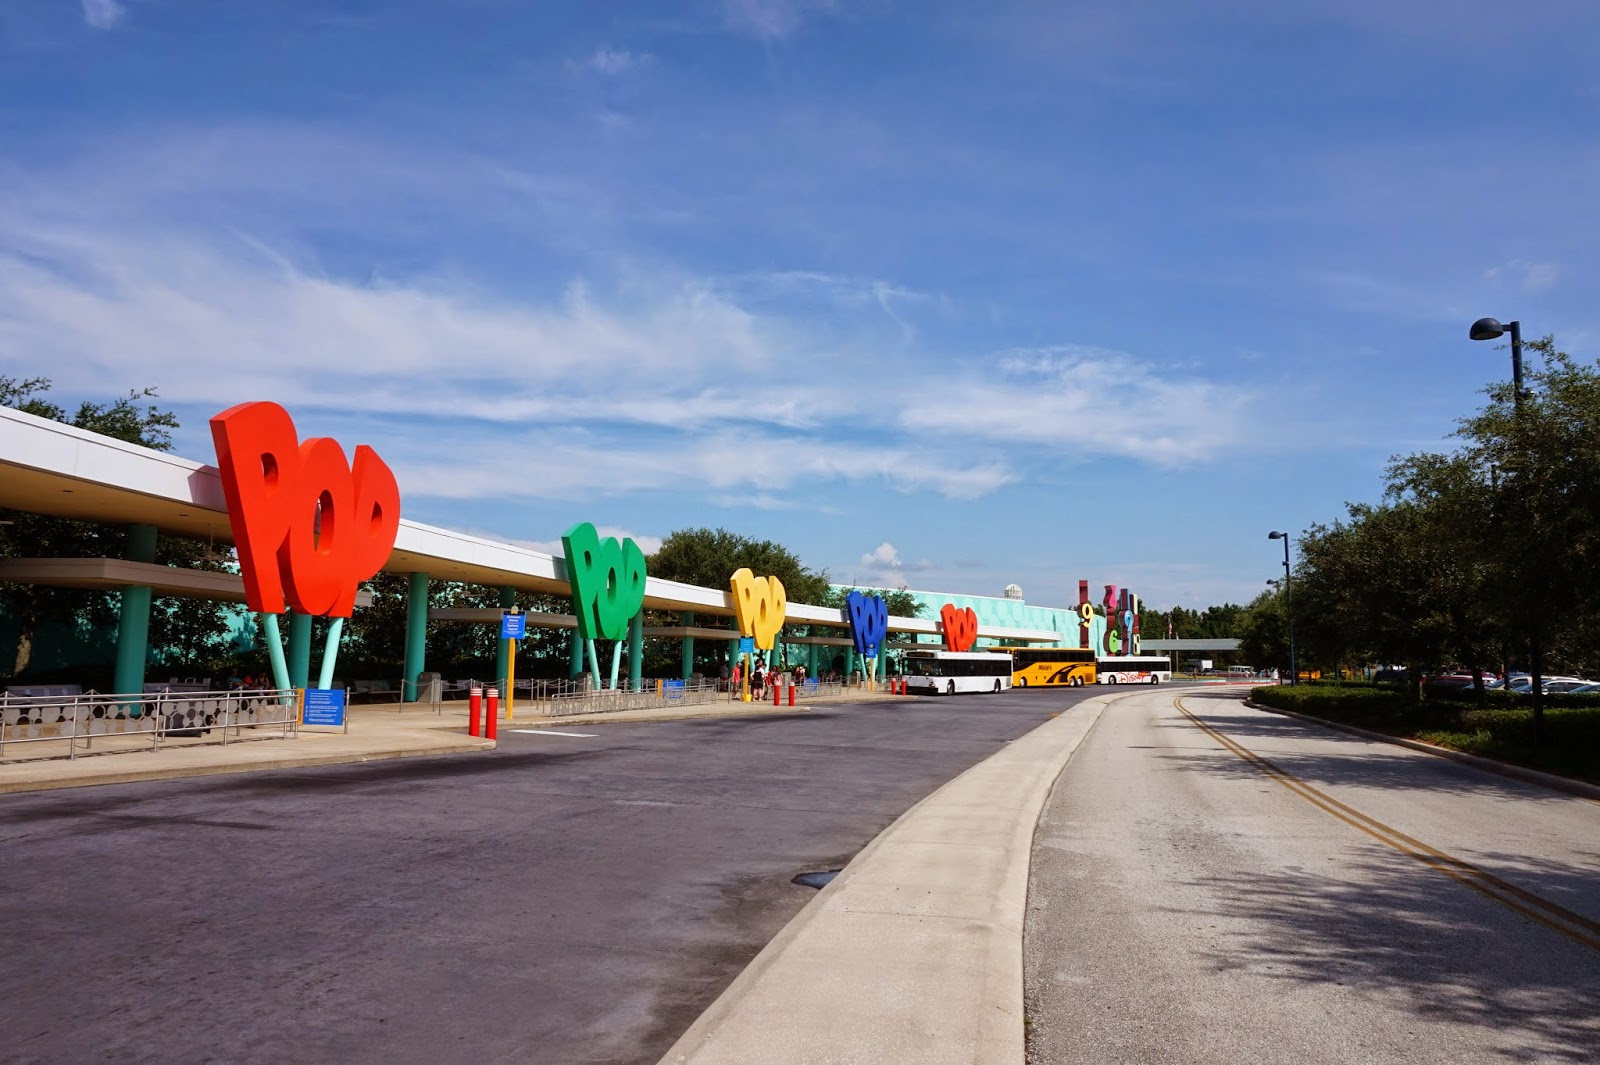 Walt Disney World's Pop Century Hotel: A Review